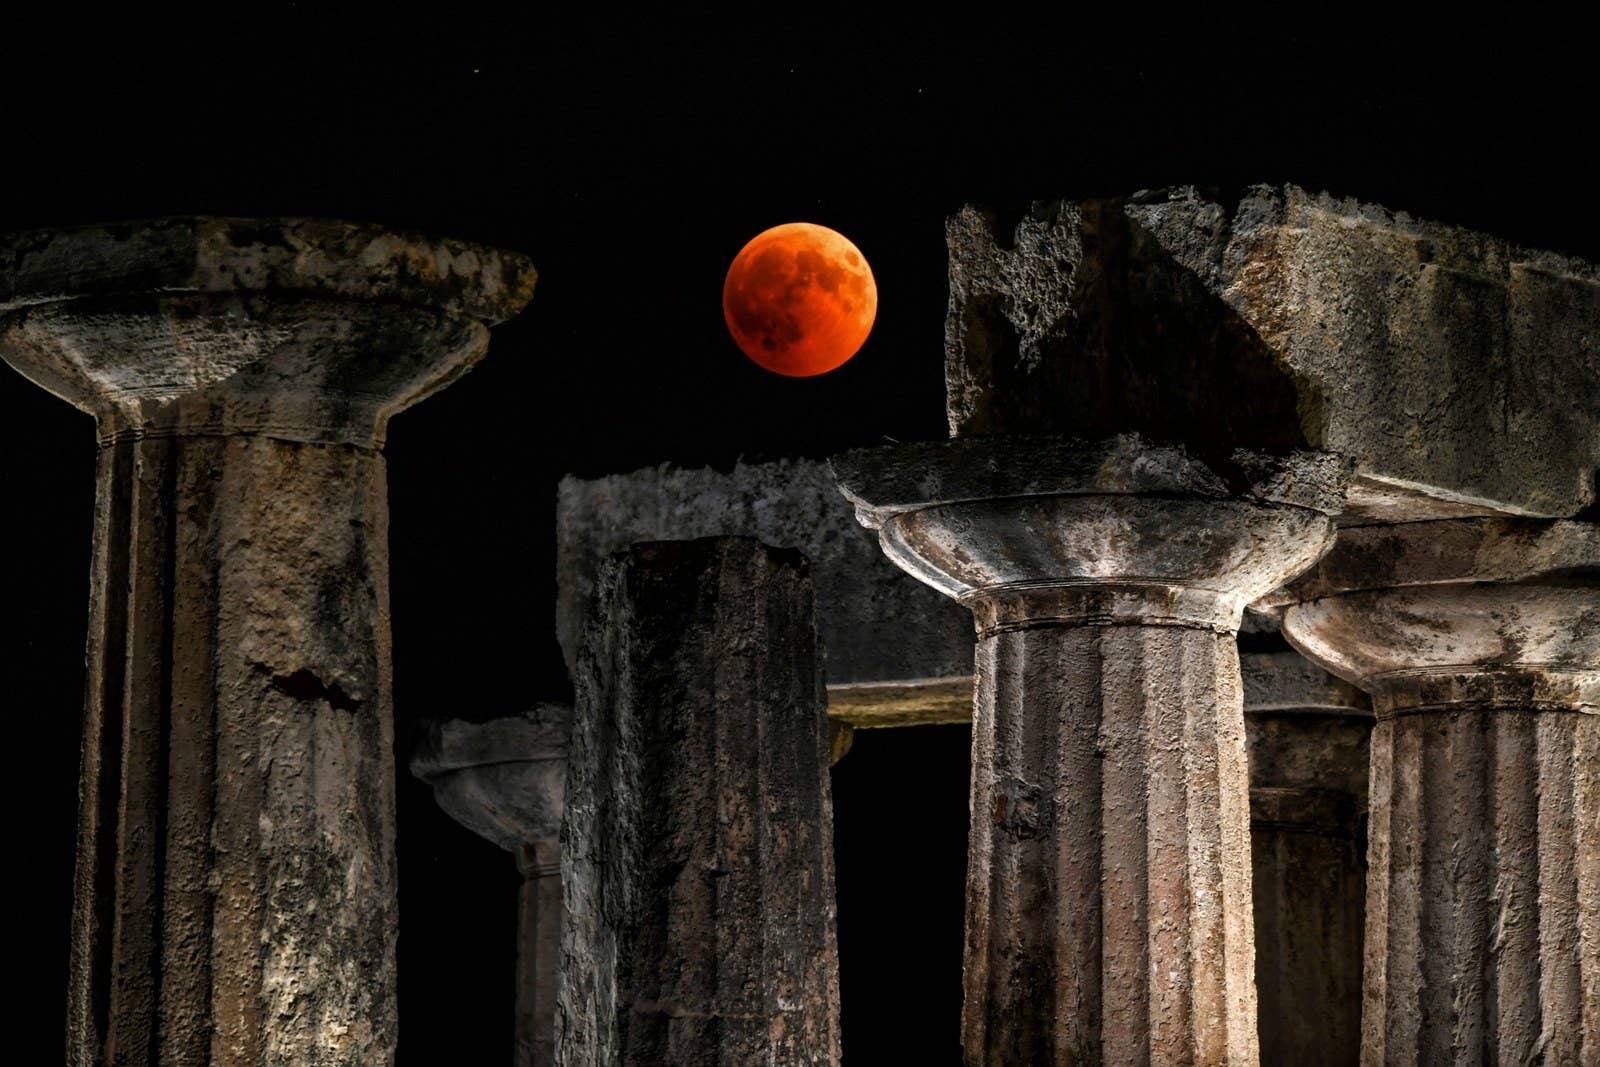 The moon rises over the temple of Apollo in Corinth, Greece.